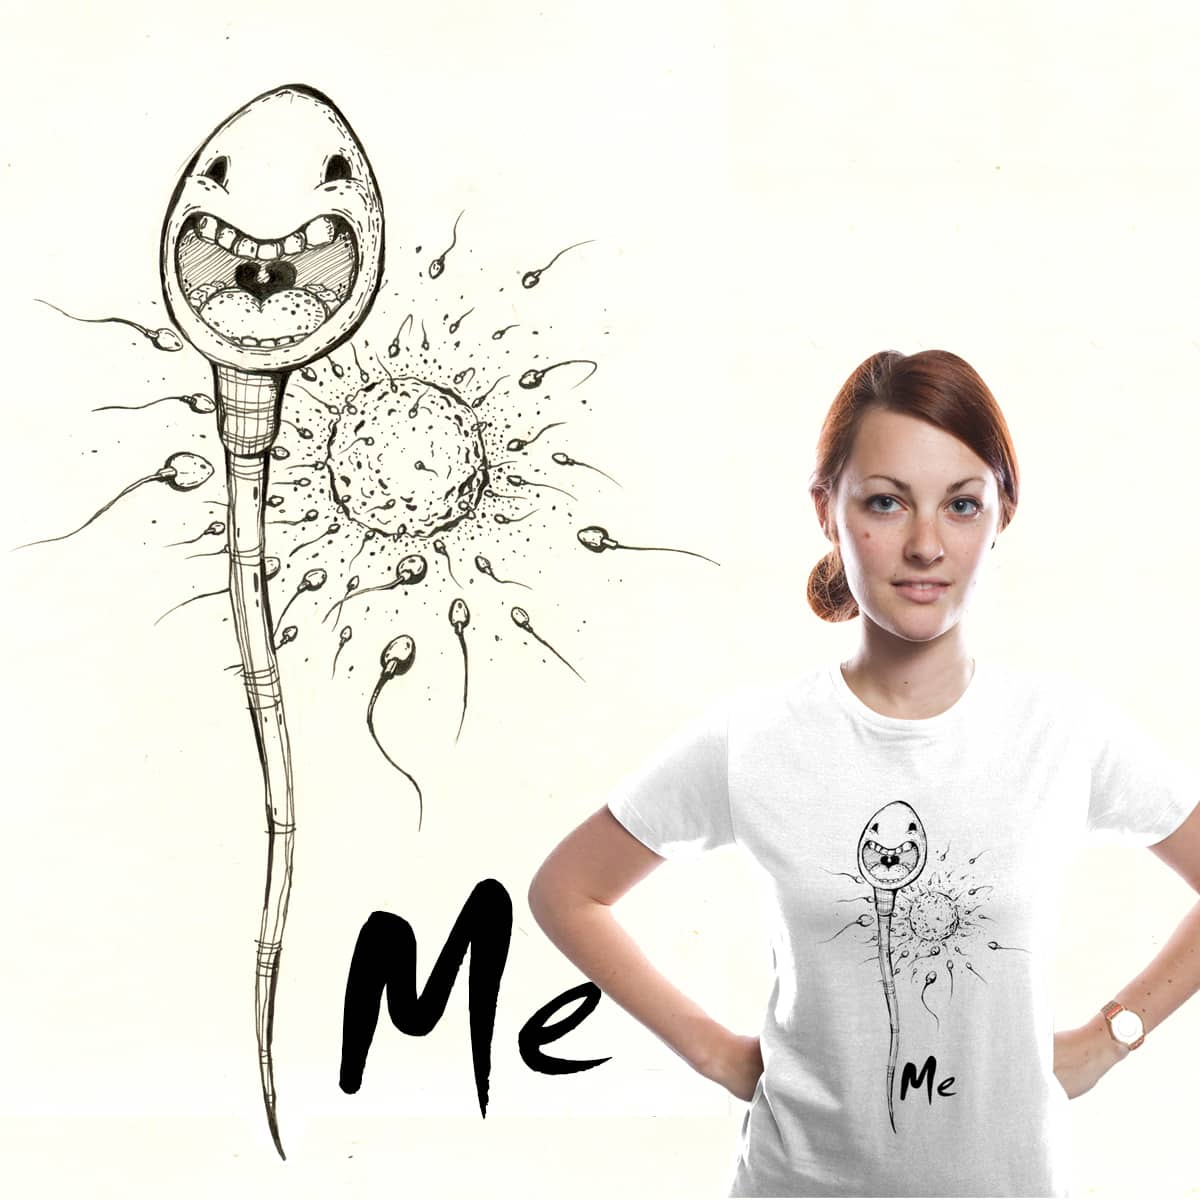 Sperm by saeed hassani on Threadless